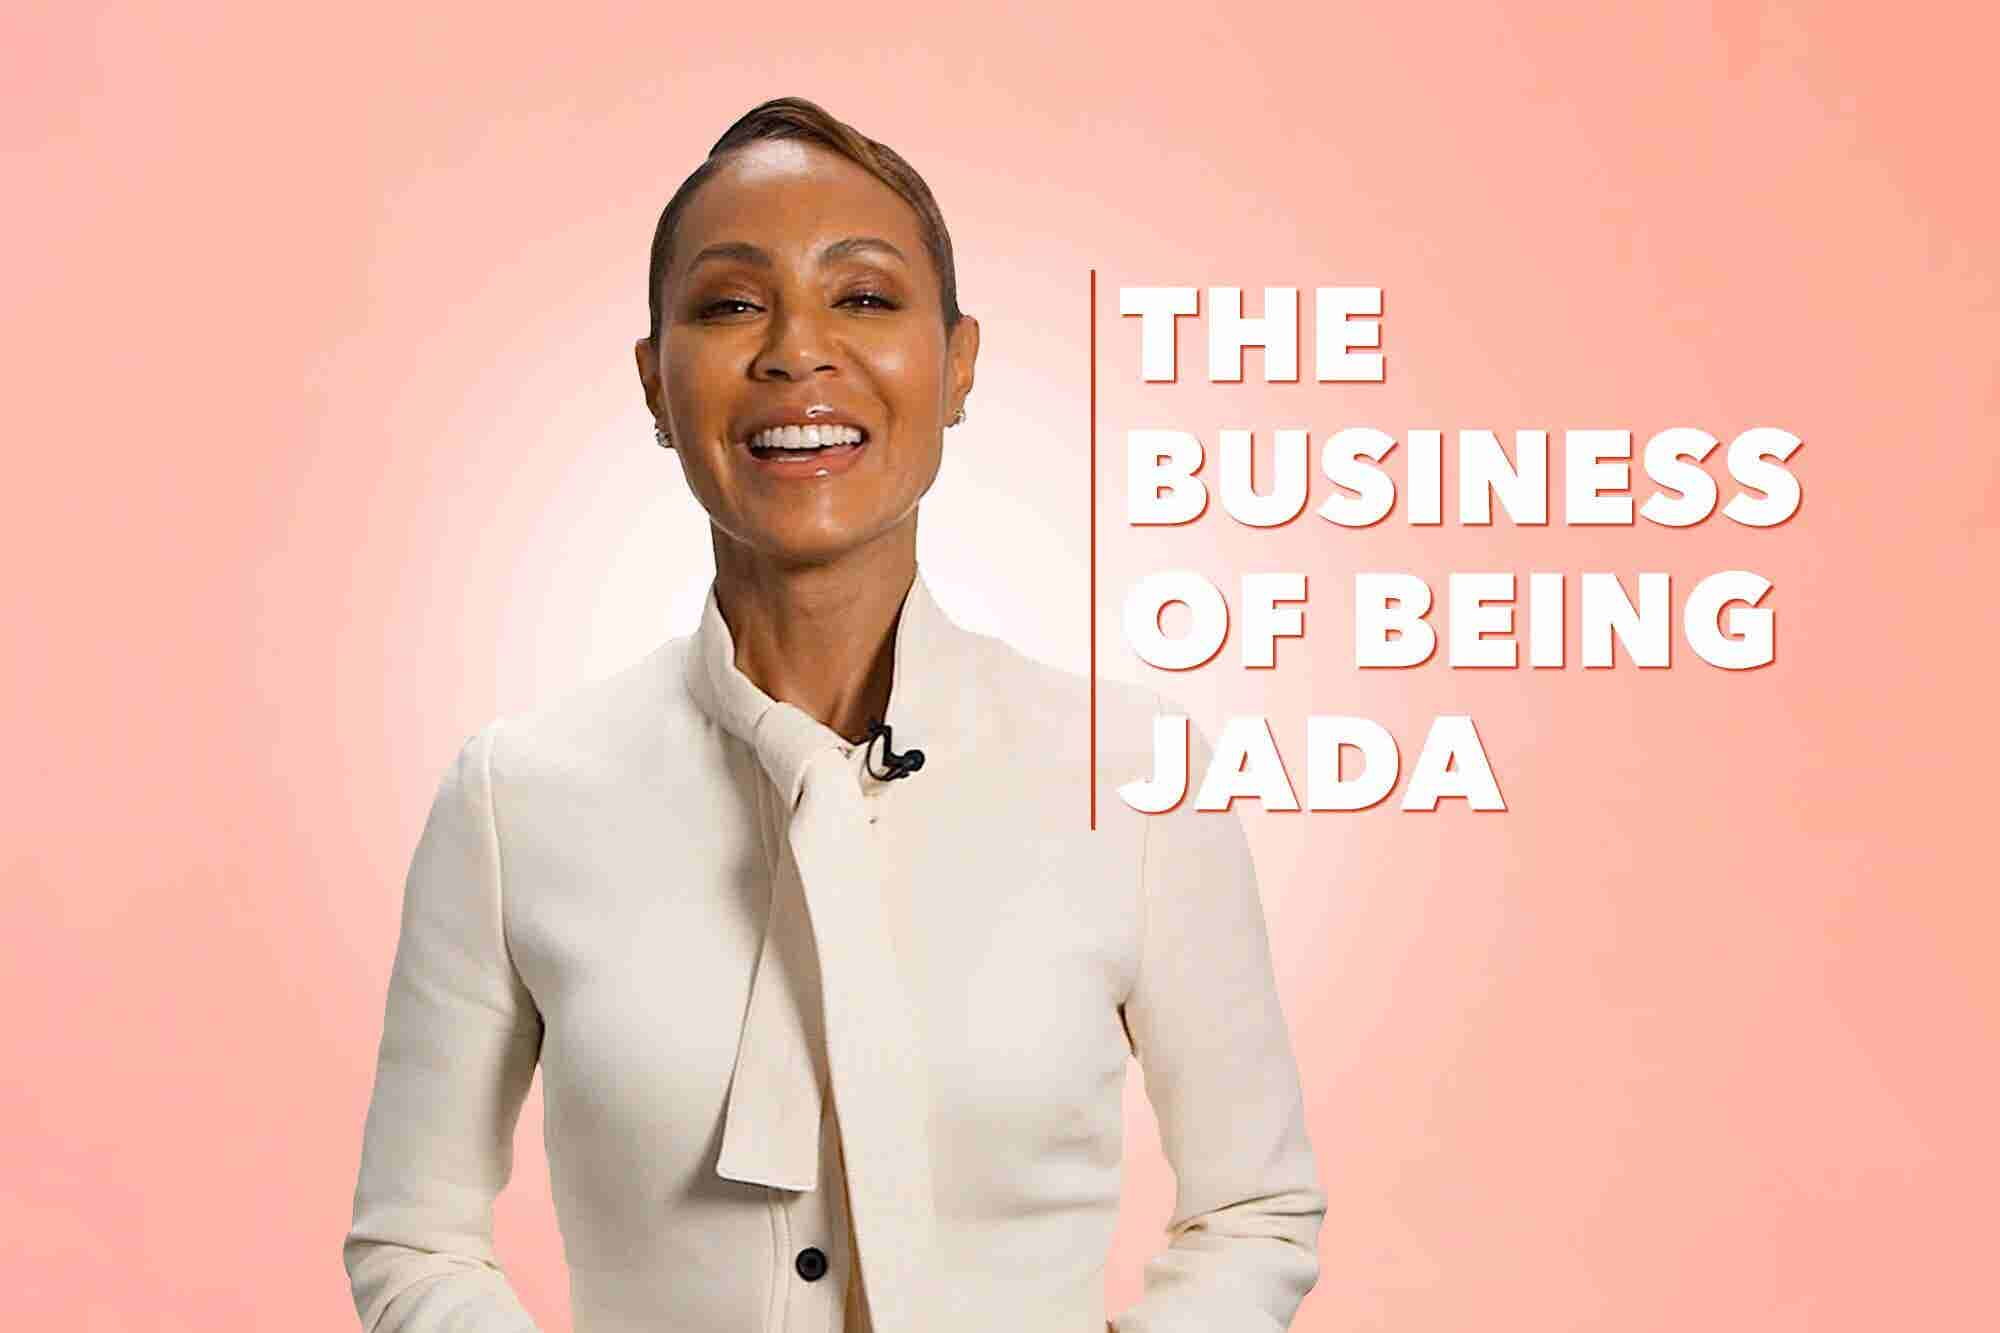 Jada Pinkett Smith on the Persistence and Passion That Drives Her as an Entrepreneur